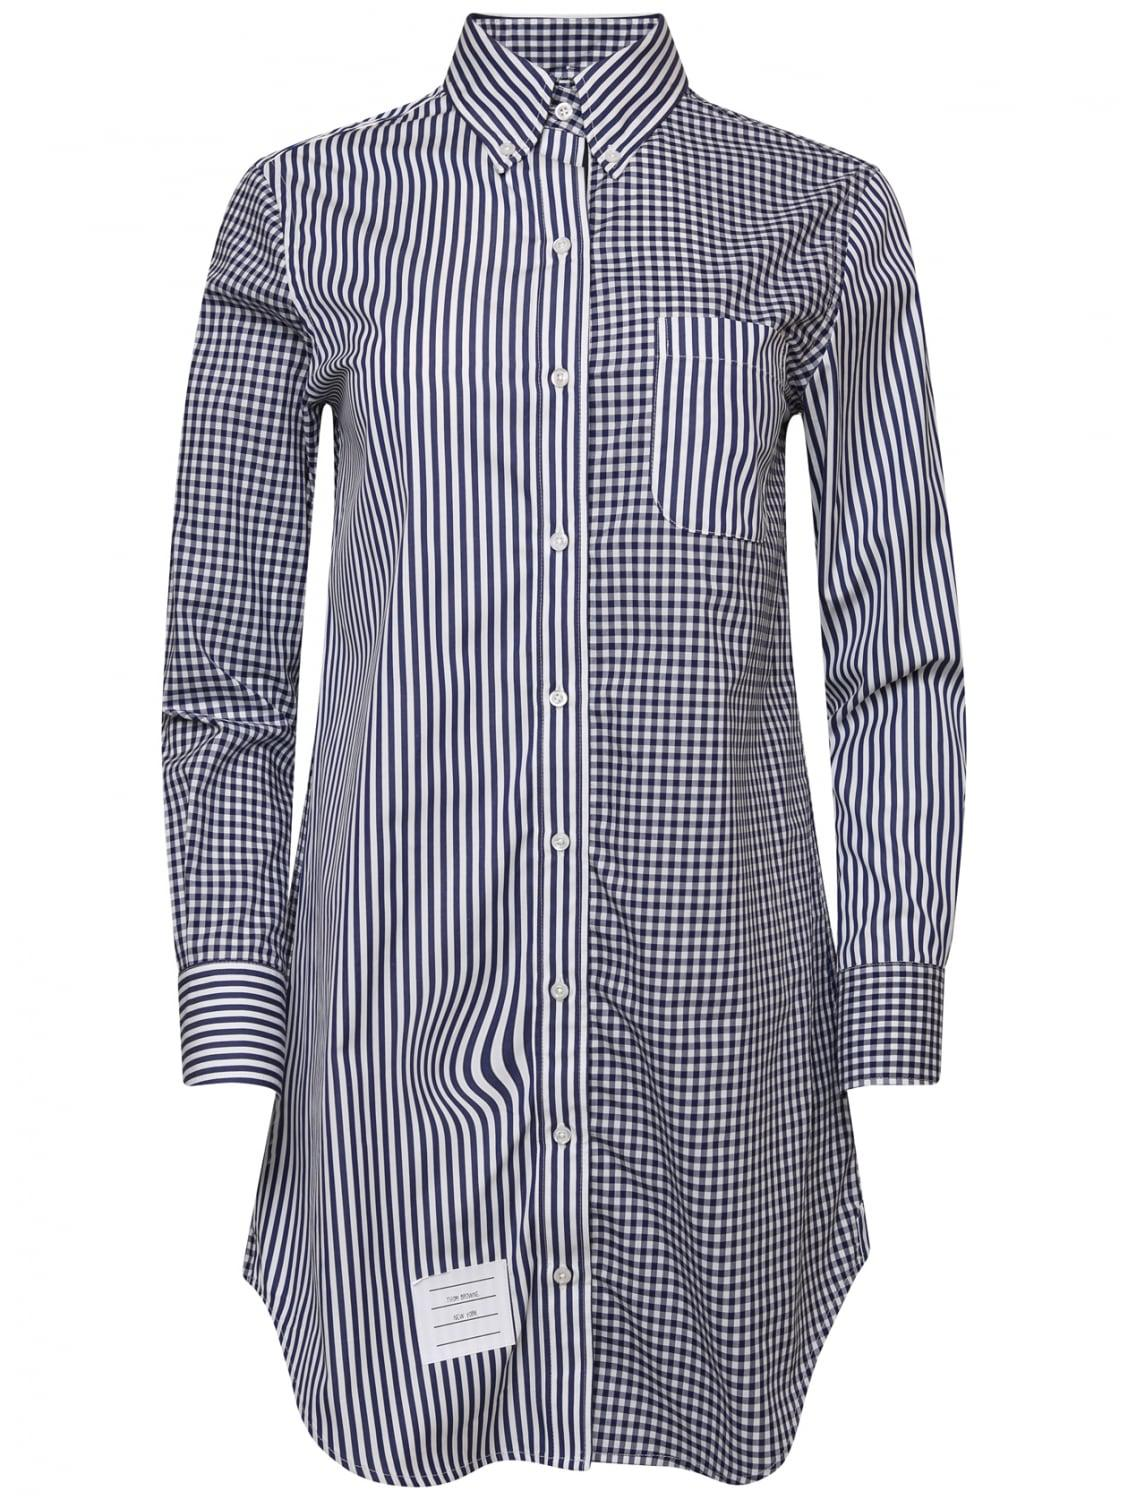 Lyst thom browne funmix l s shirt dress navy in blue for Thom browne shirt sale